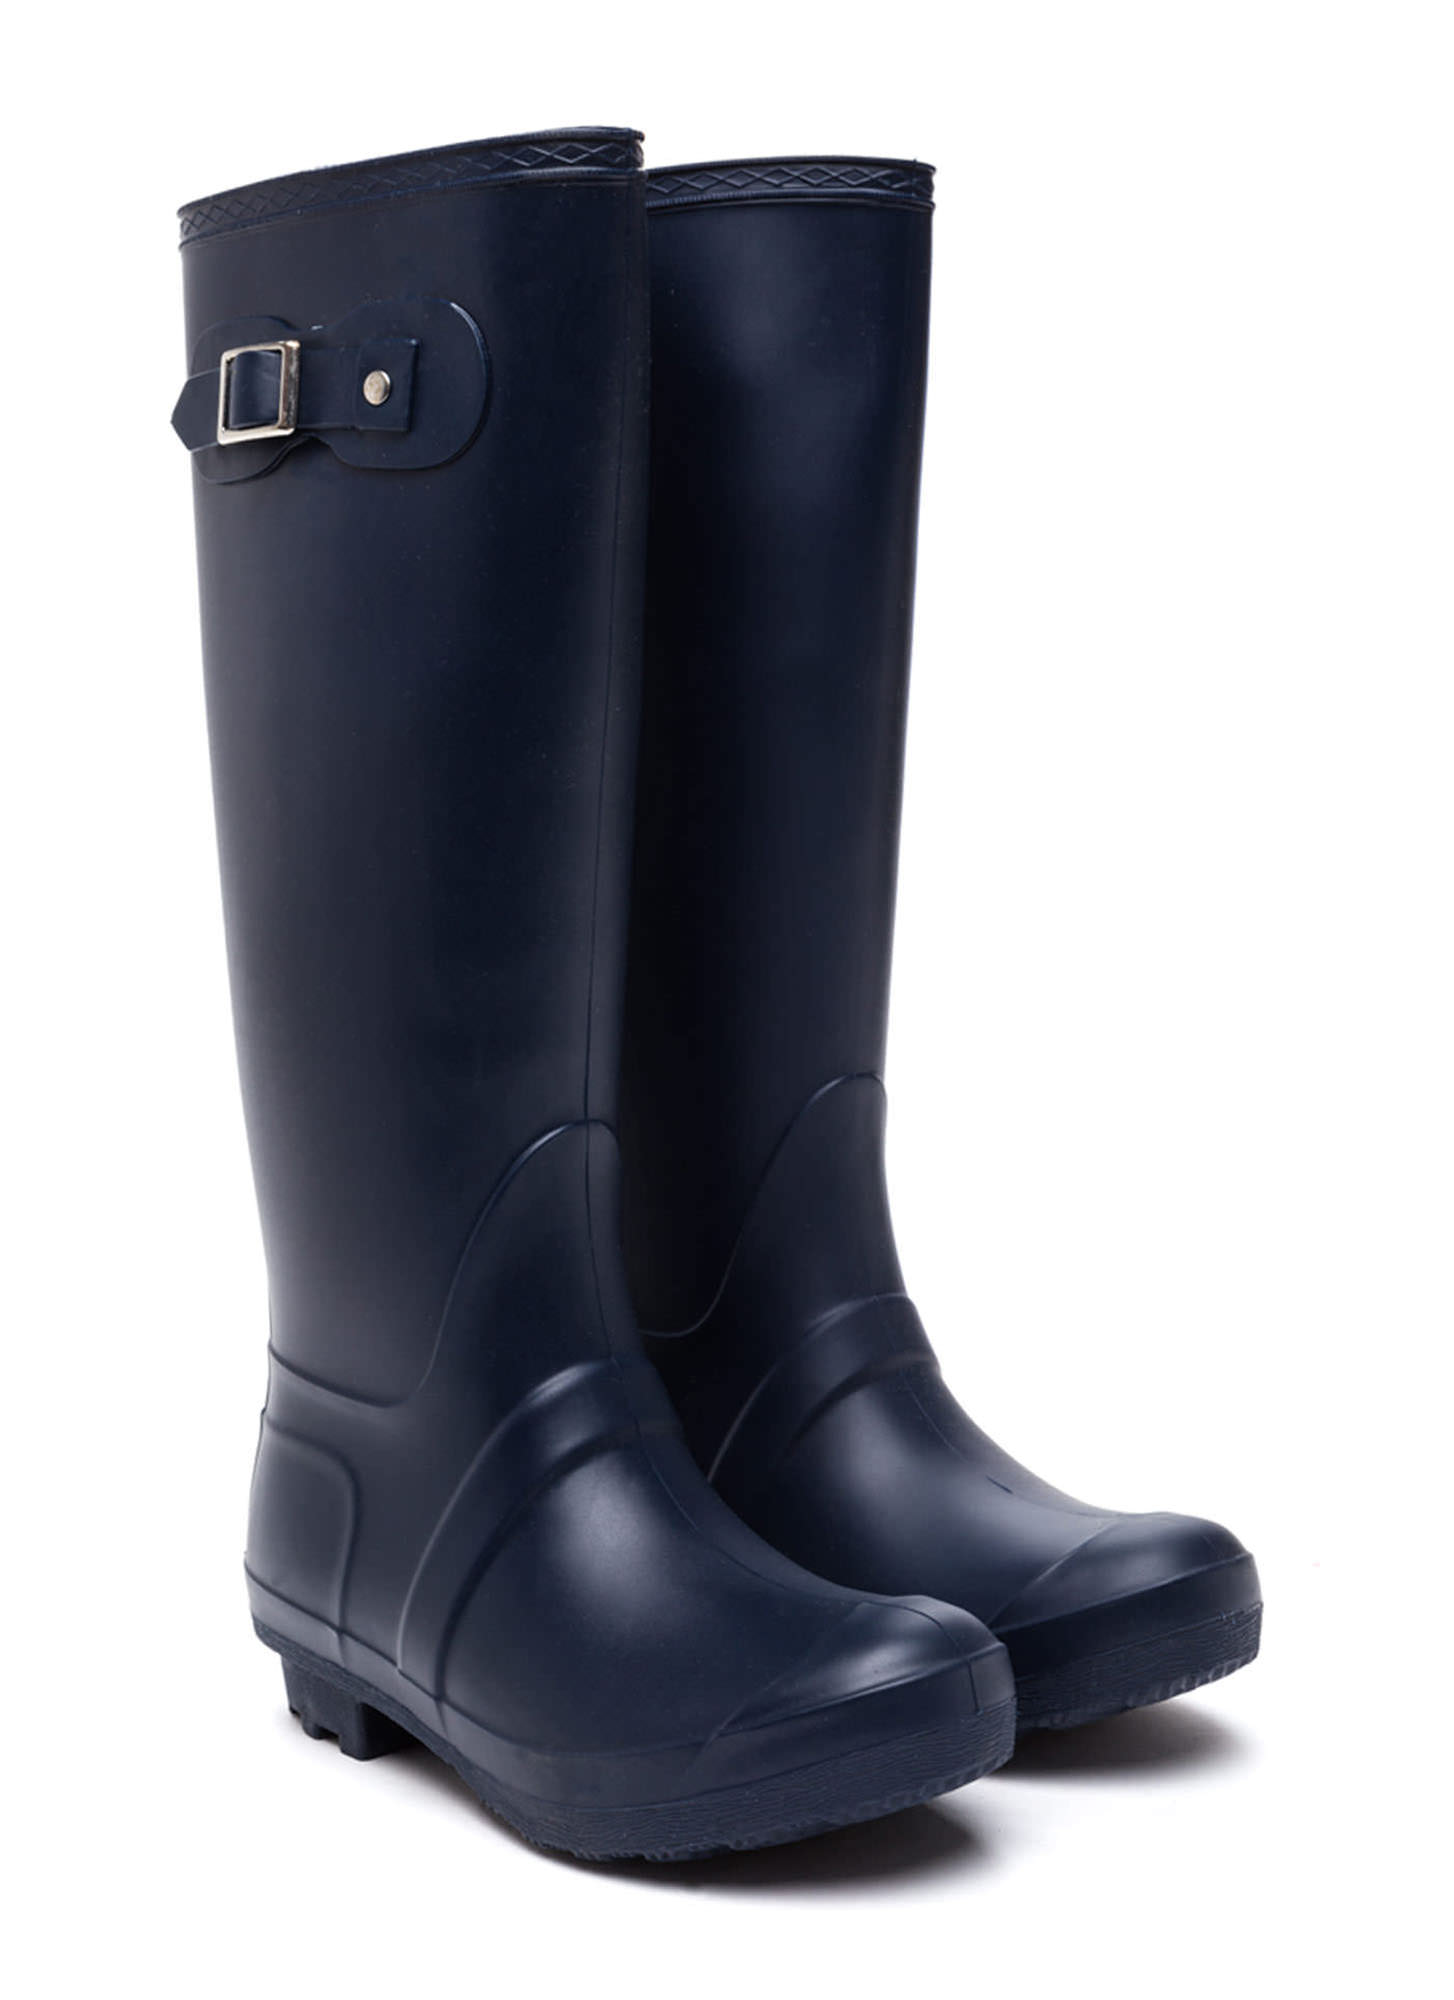 Navy Blue Rain Boots - Cr Boot